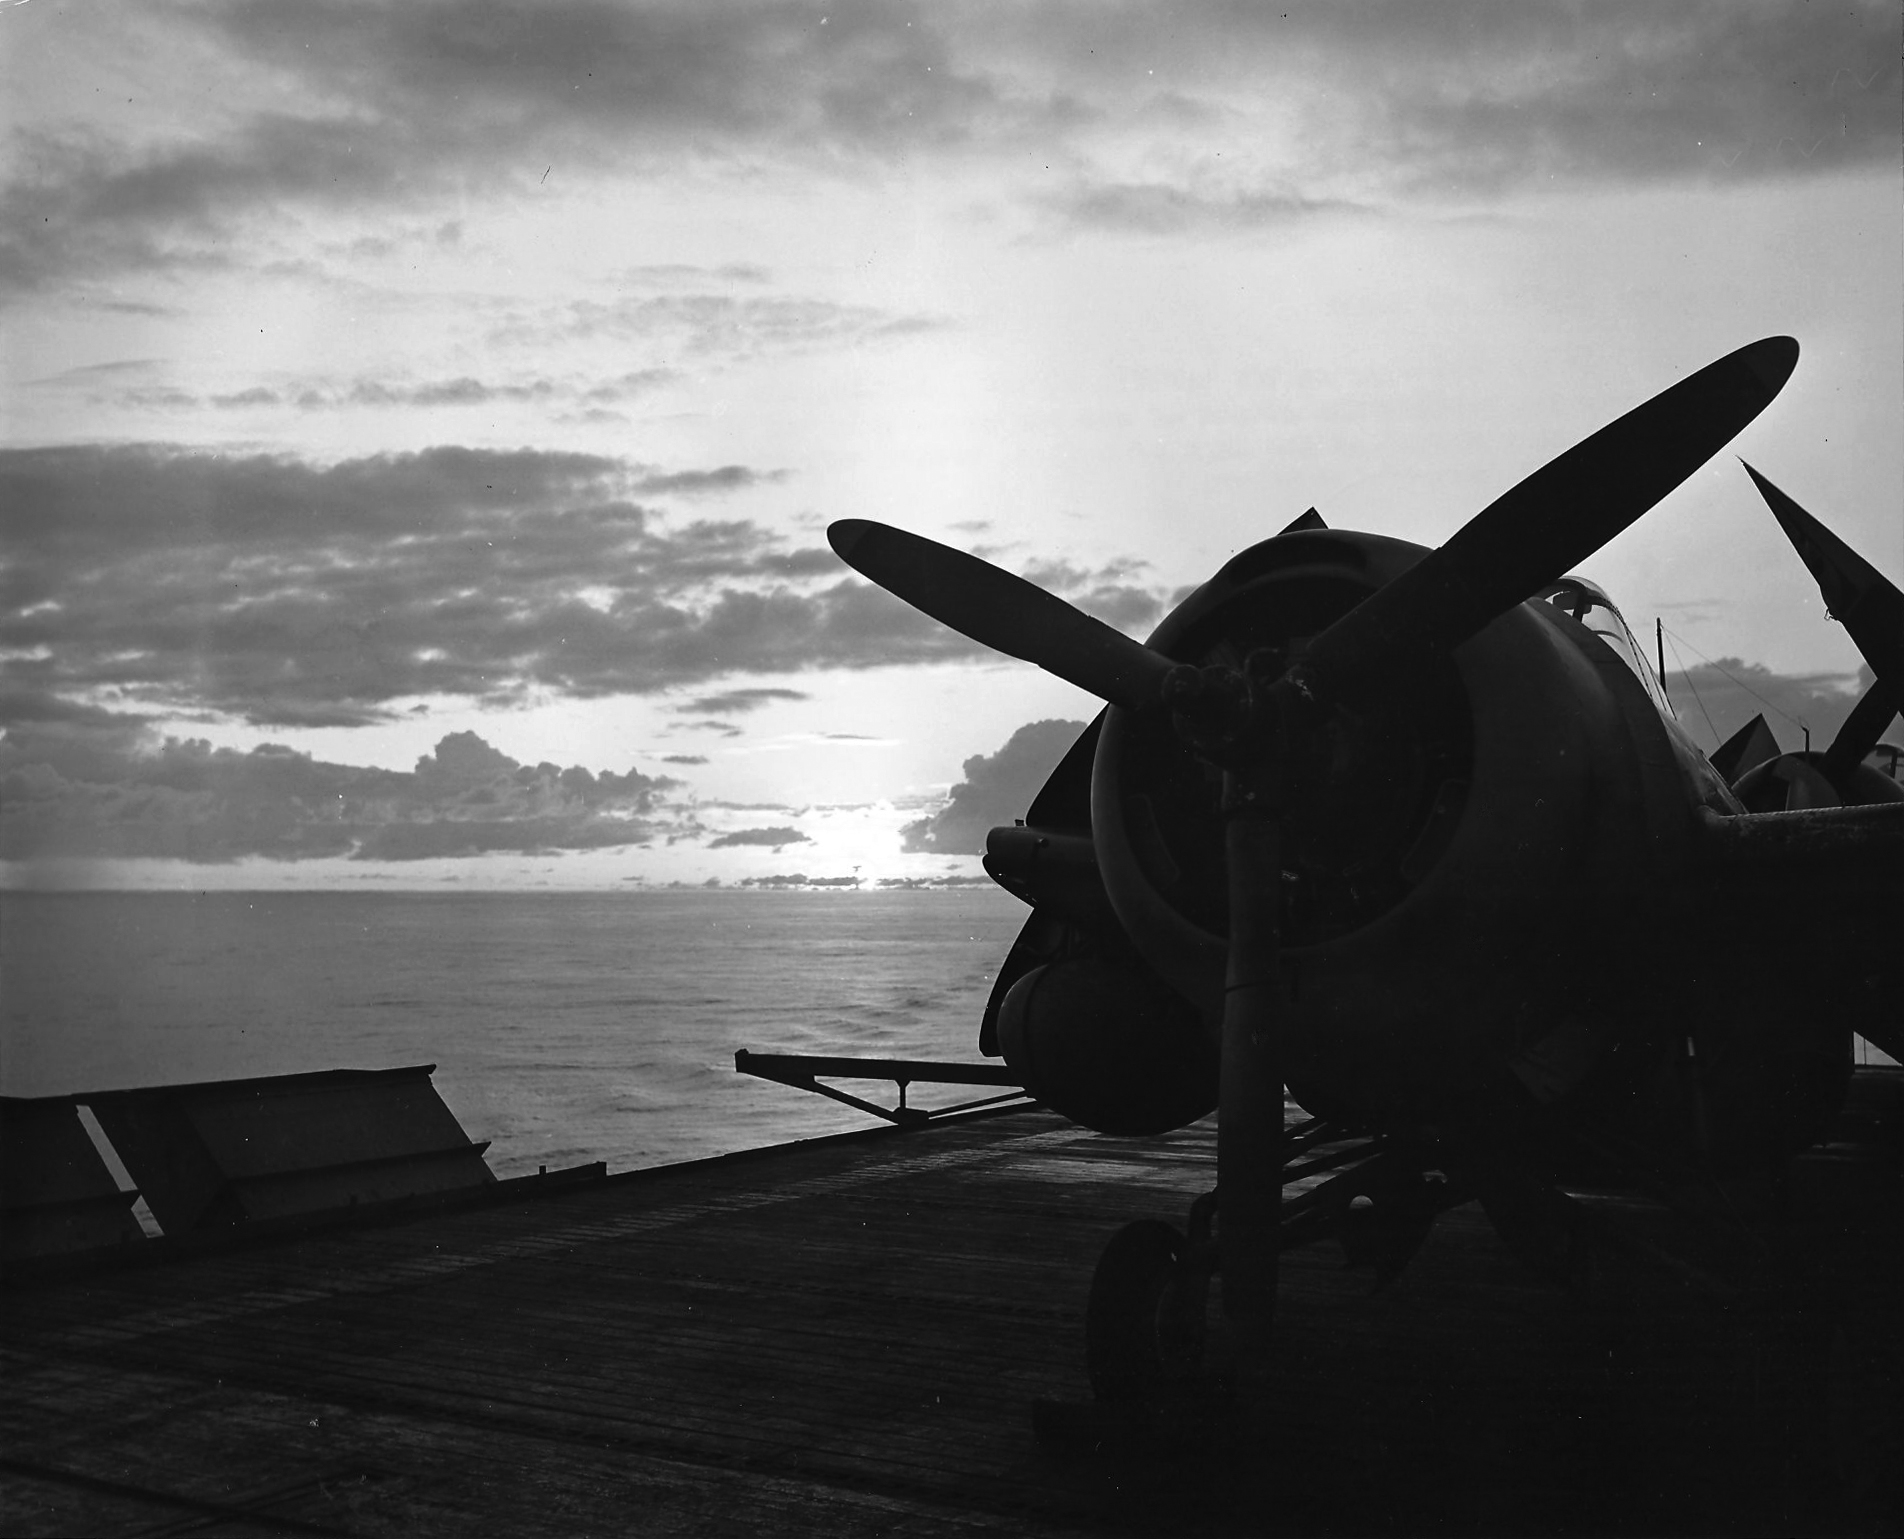 Wildcat high lighted by the morning glory somewhere in the Atlantic 31st Aug 1943 01